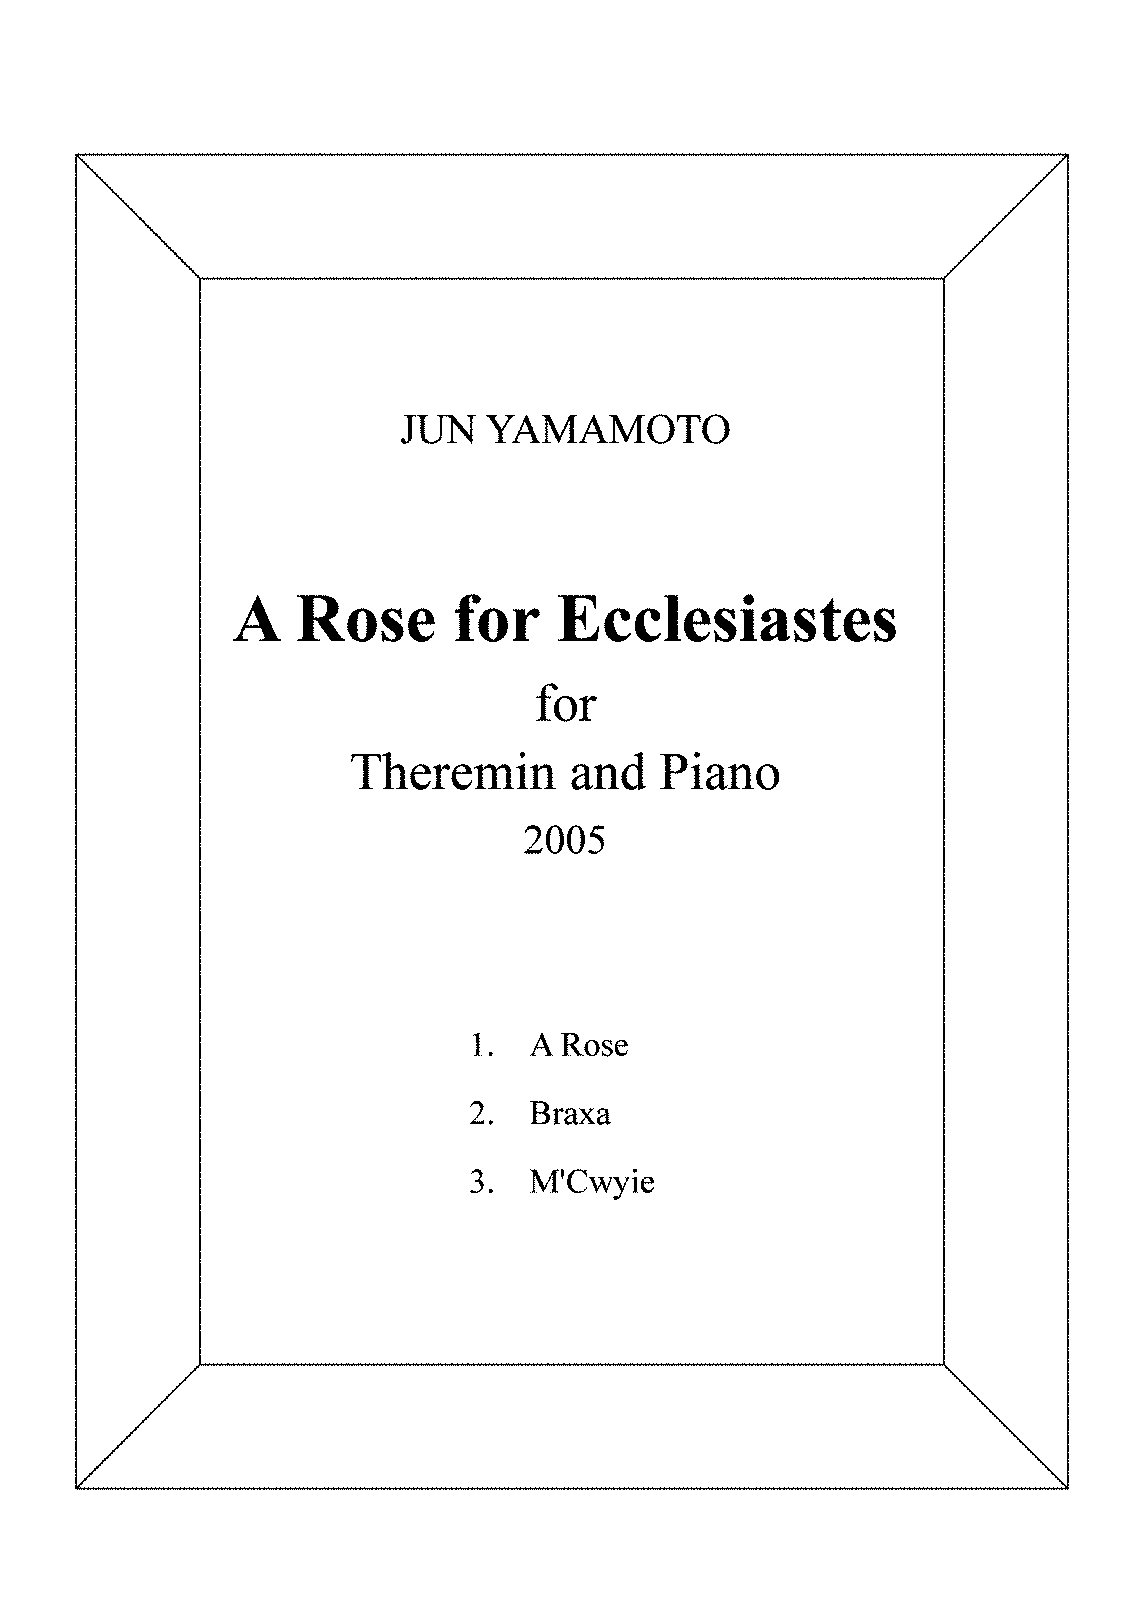 PMLP393731-A Rose for Ecclesiastes.pdf